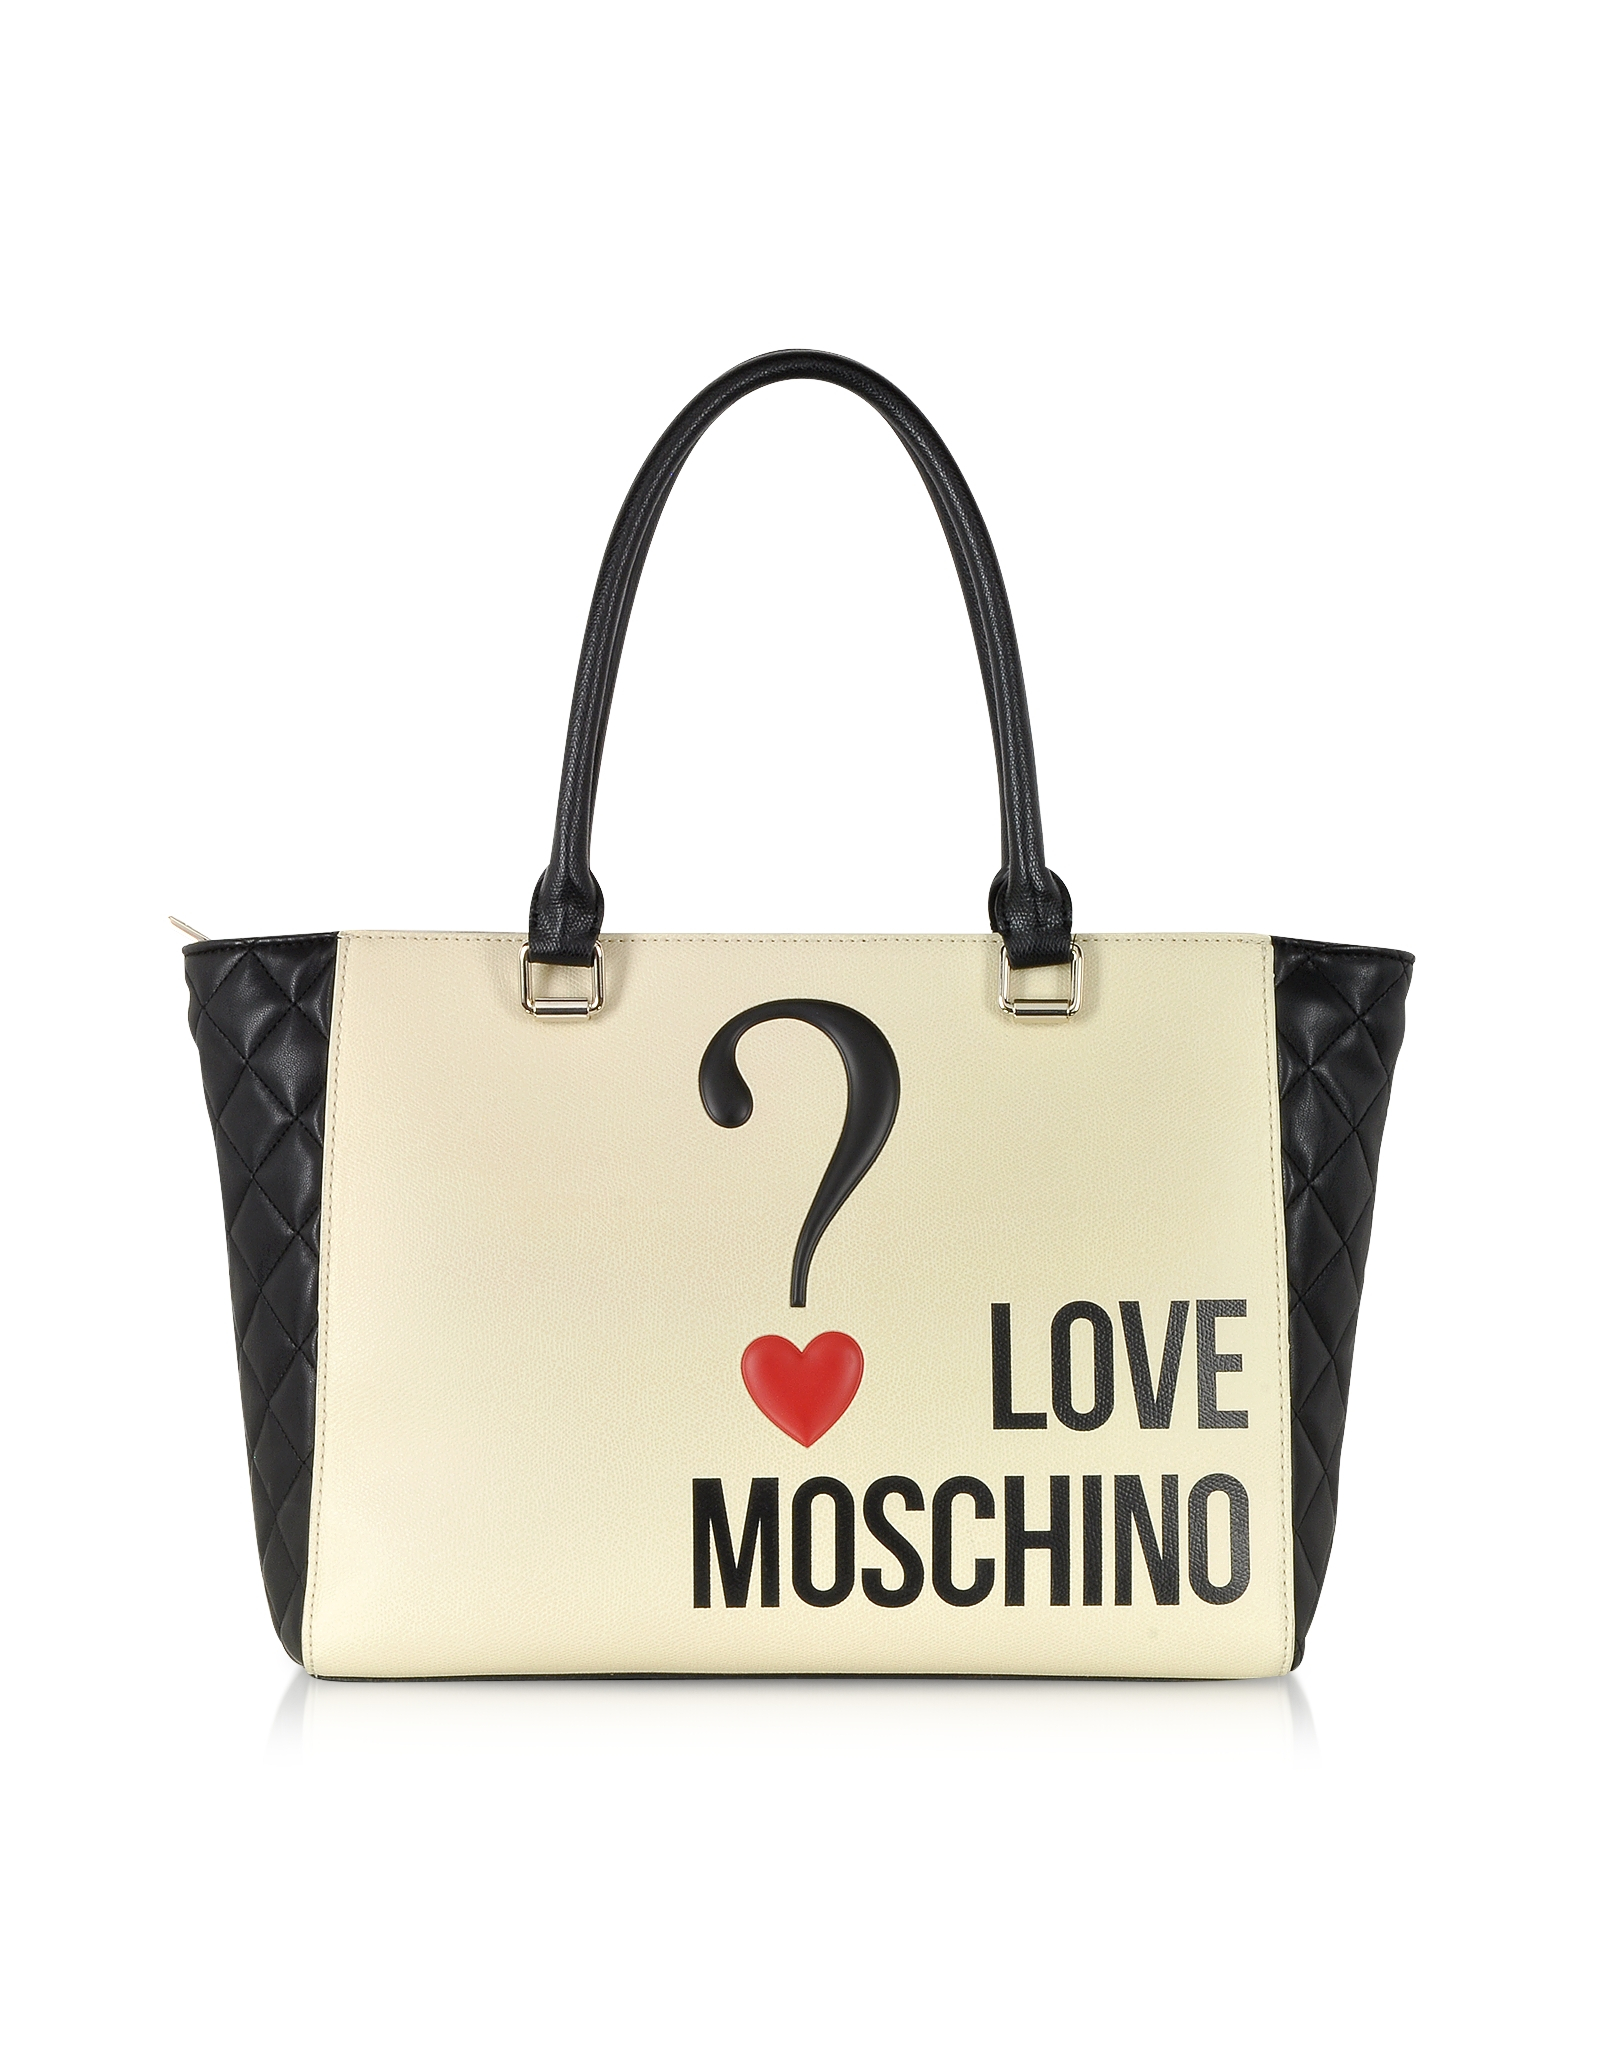 moschino love color block eco leather shopper tote in natural lyst. Black Bedroom Furniture Sets. Home Design Ideas